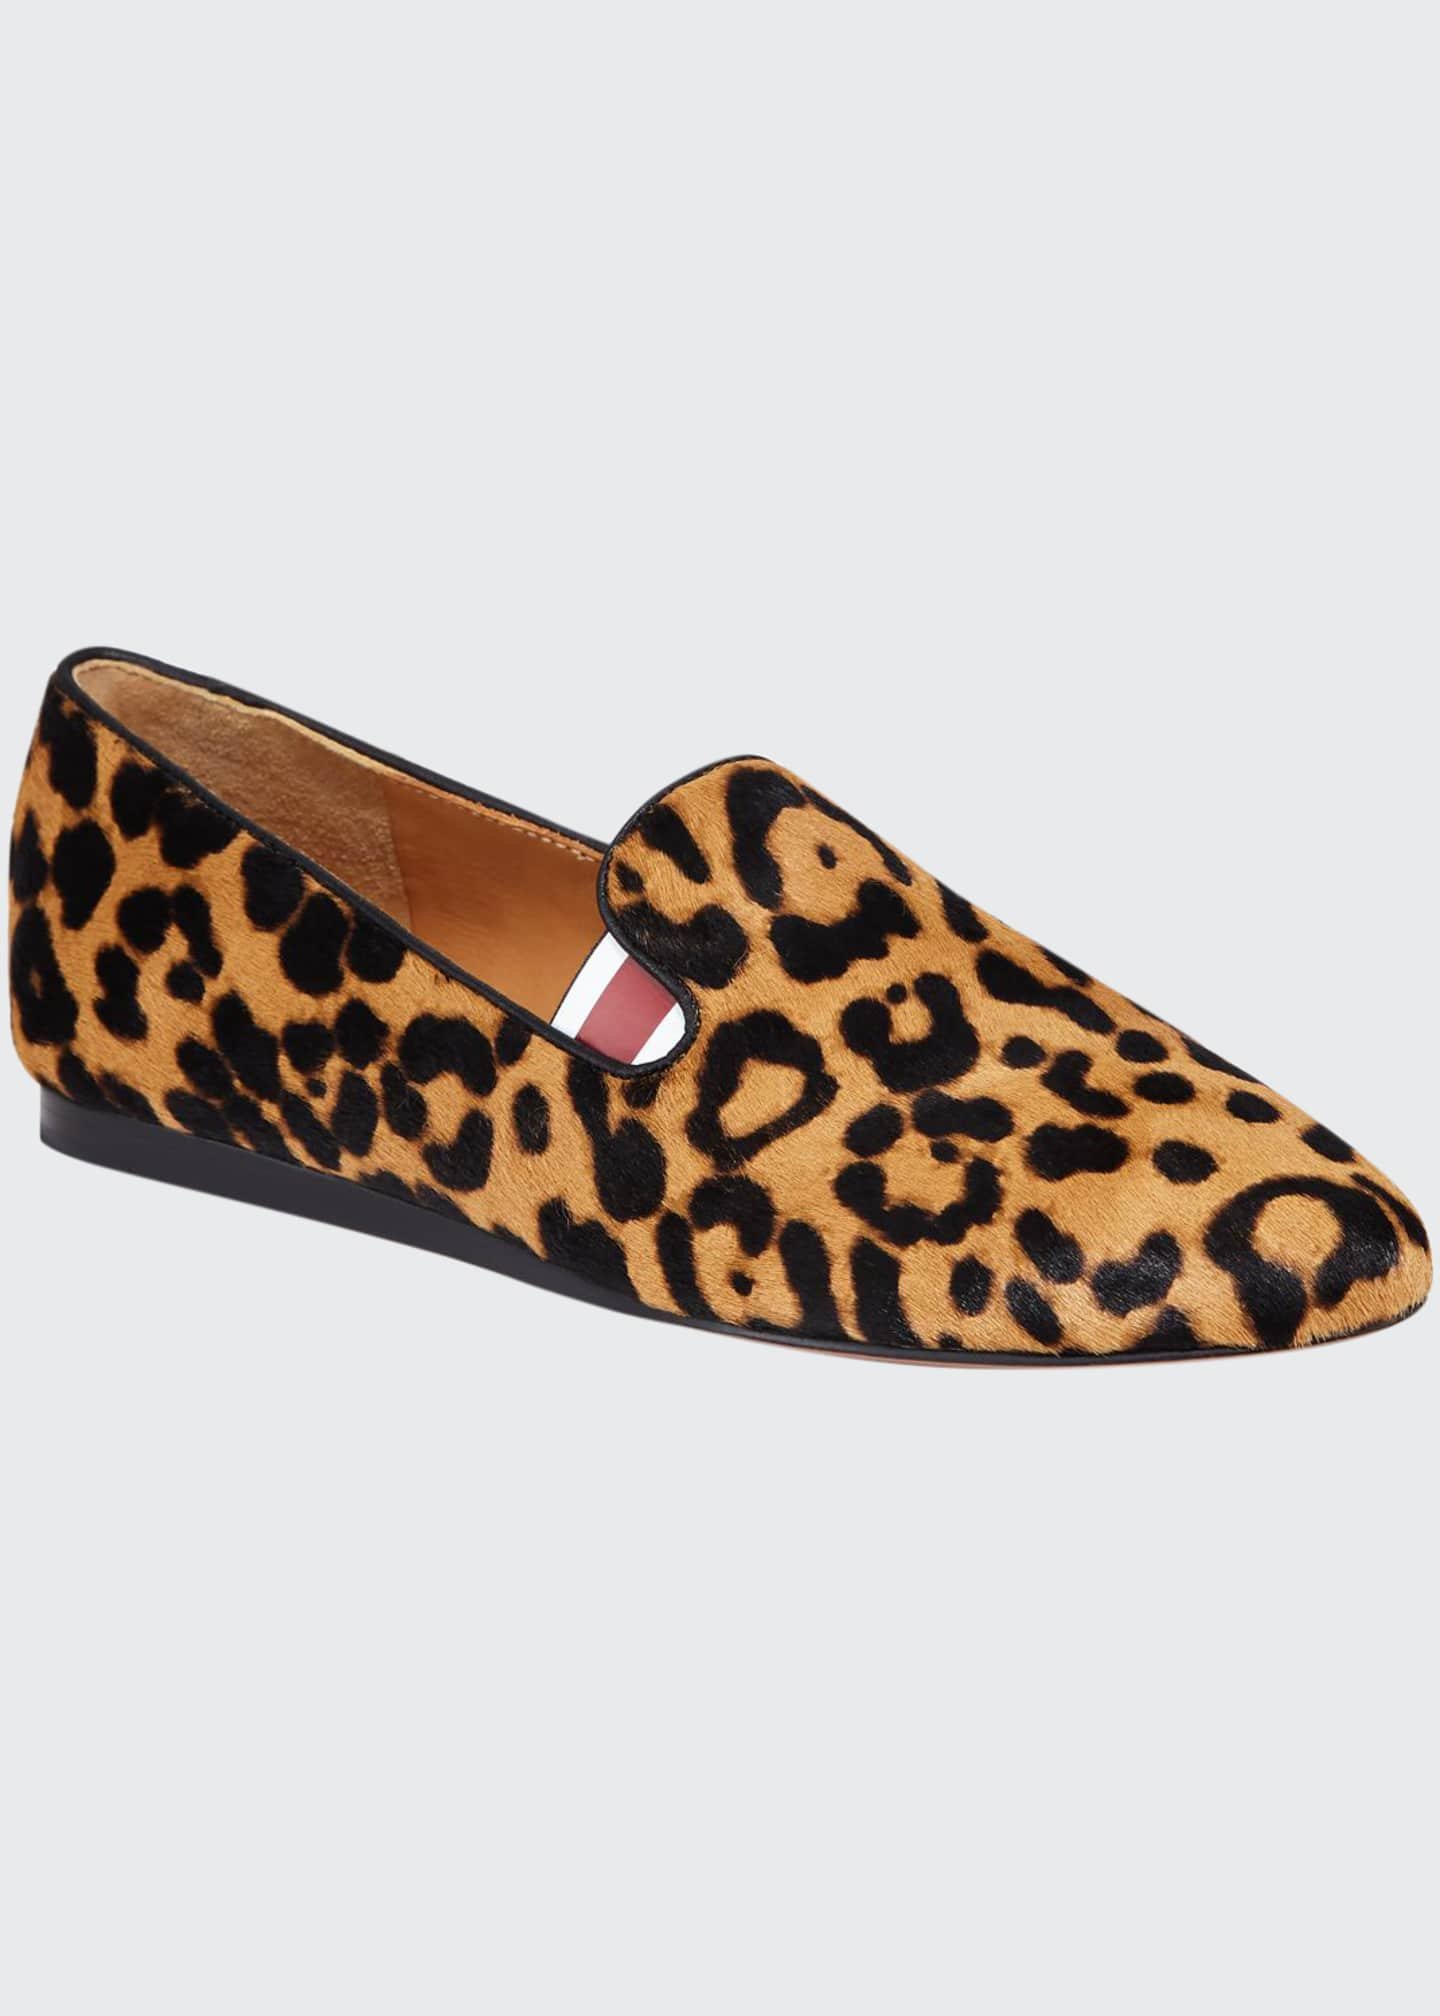 Image 1 of 3: Griffin Leopard Calf Hair Loafers